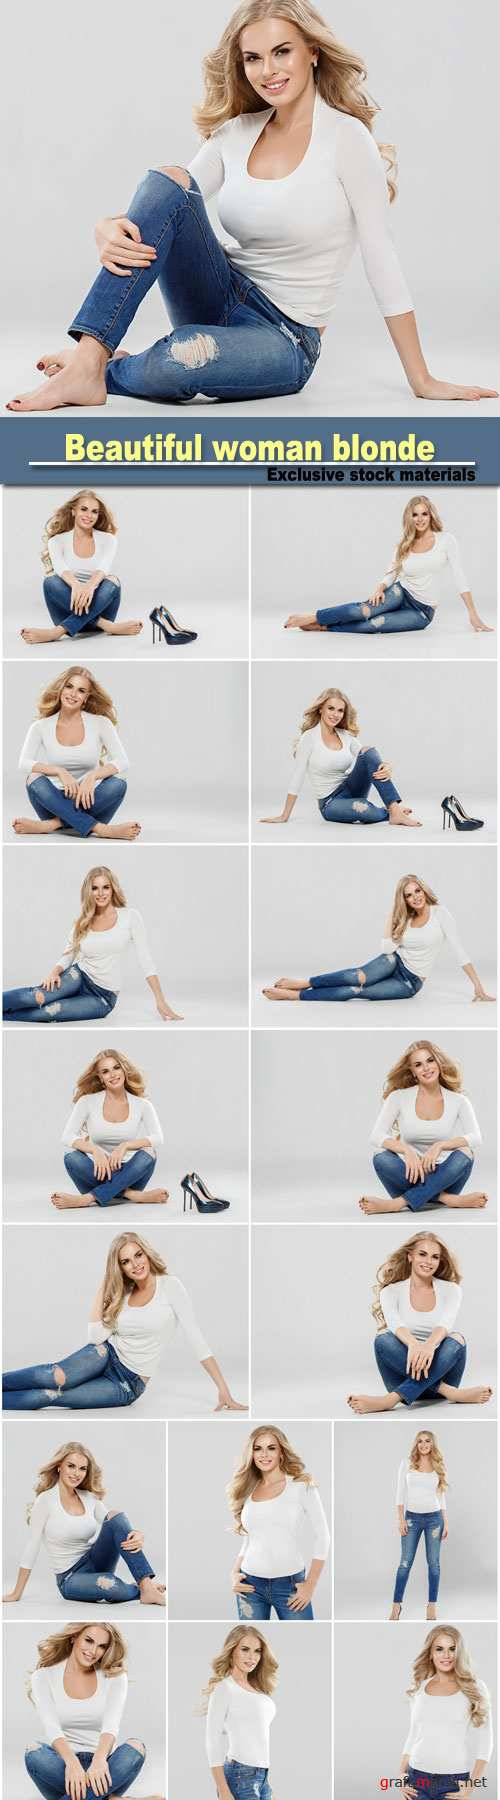 Beautiful woman blonde curly hair sexy portrait jeans fashion